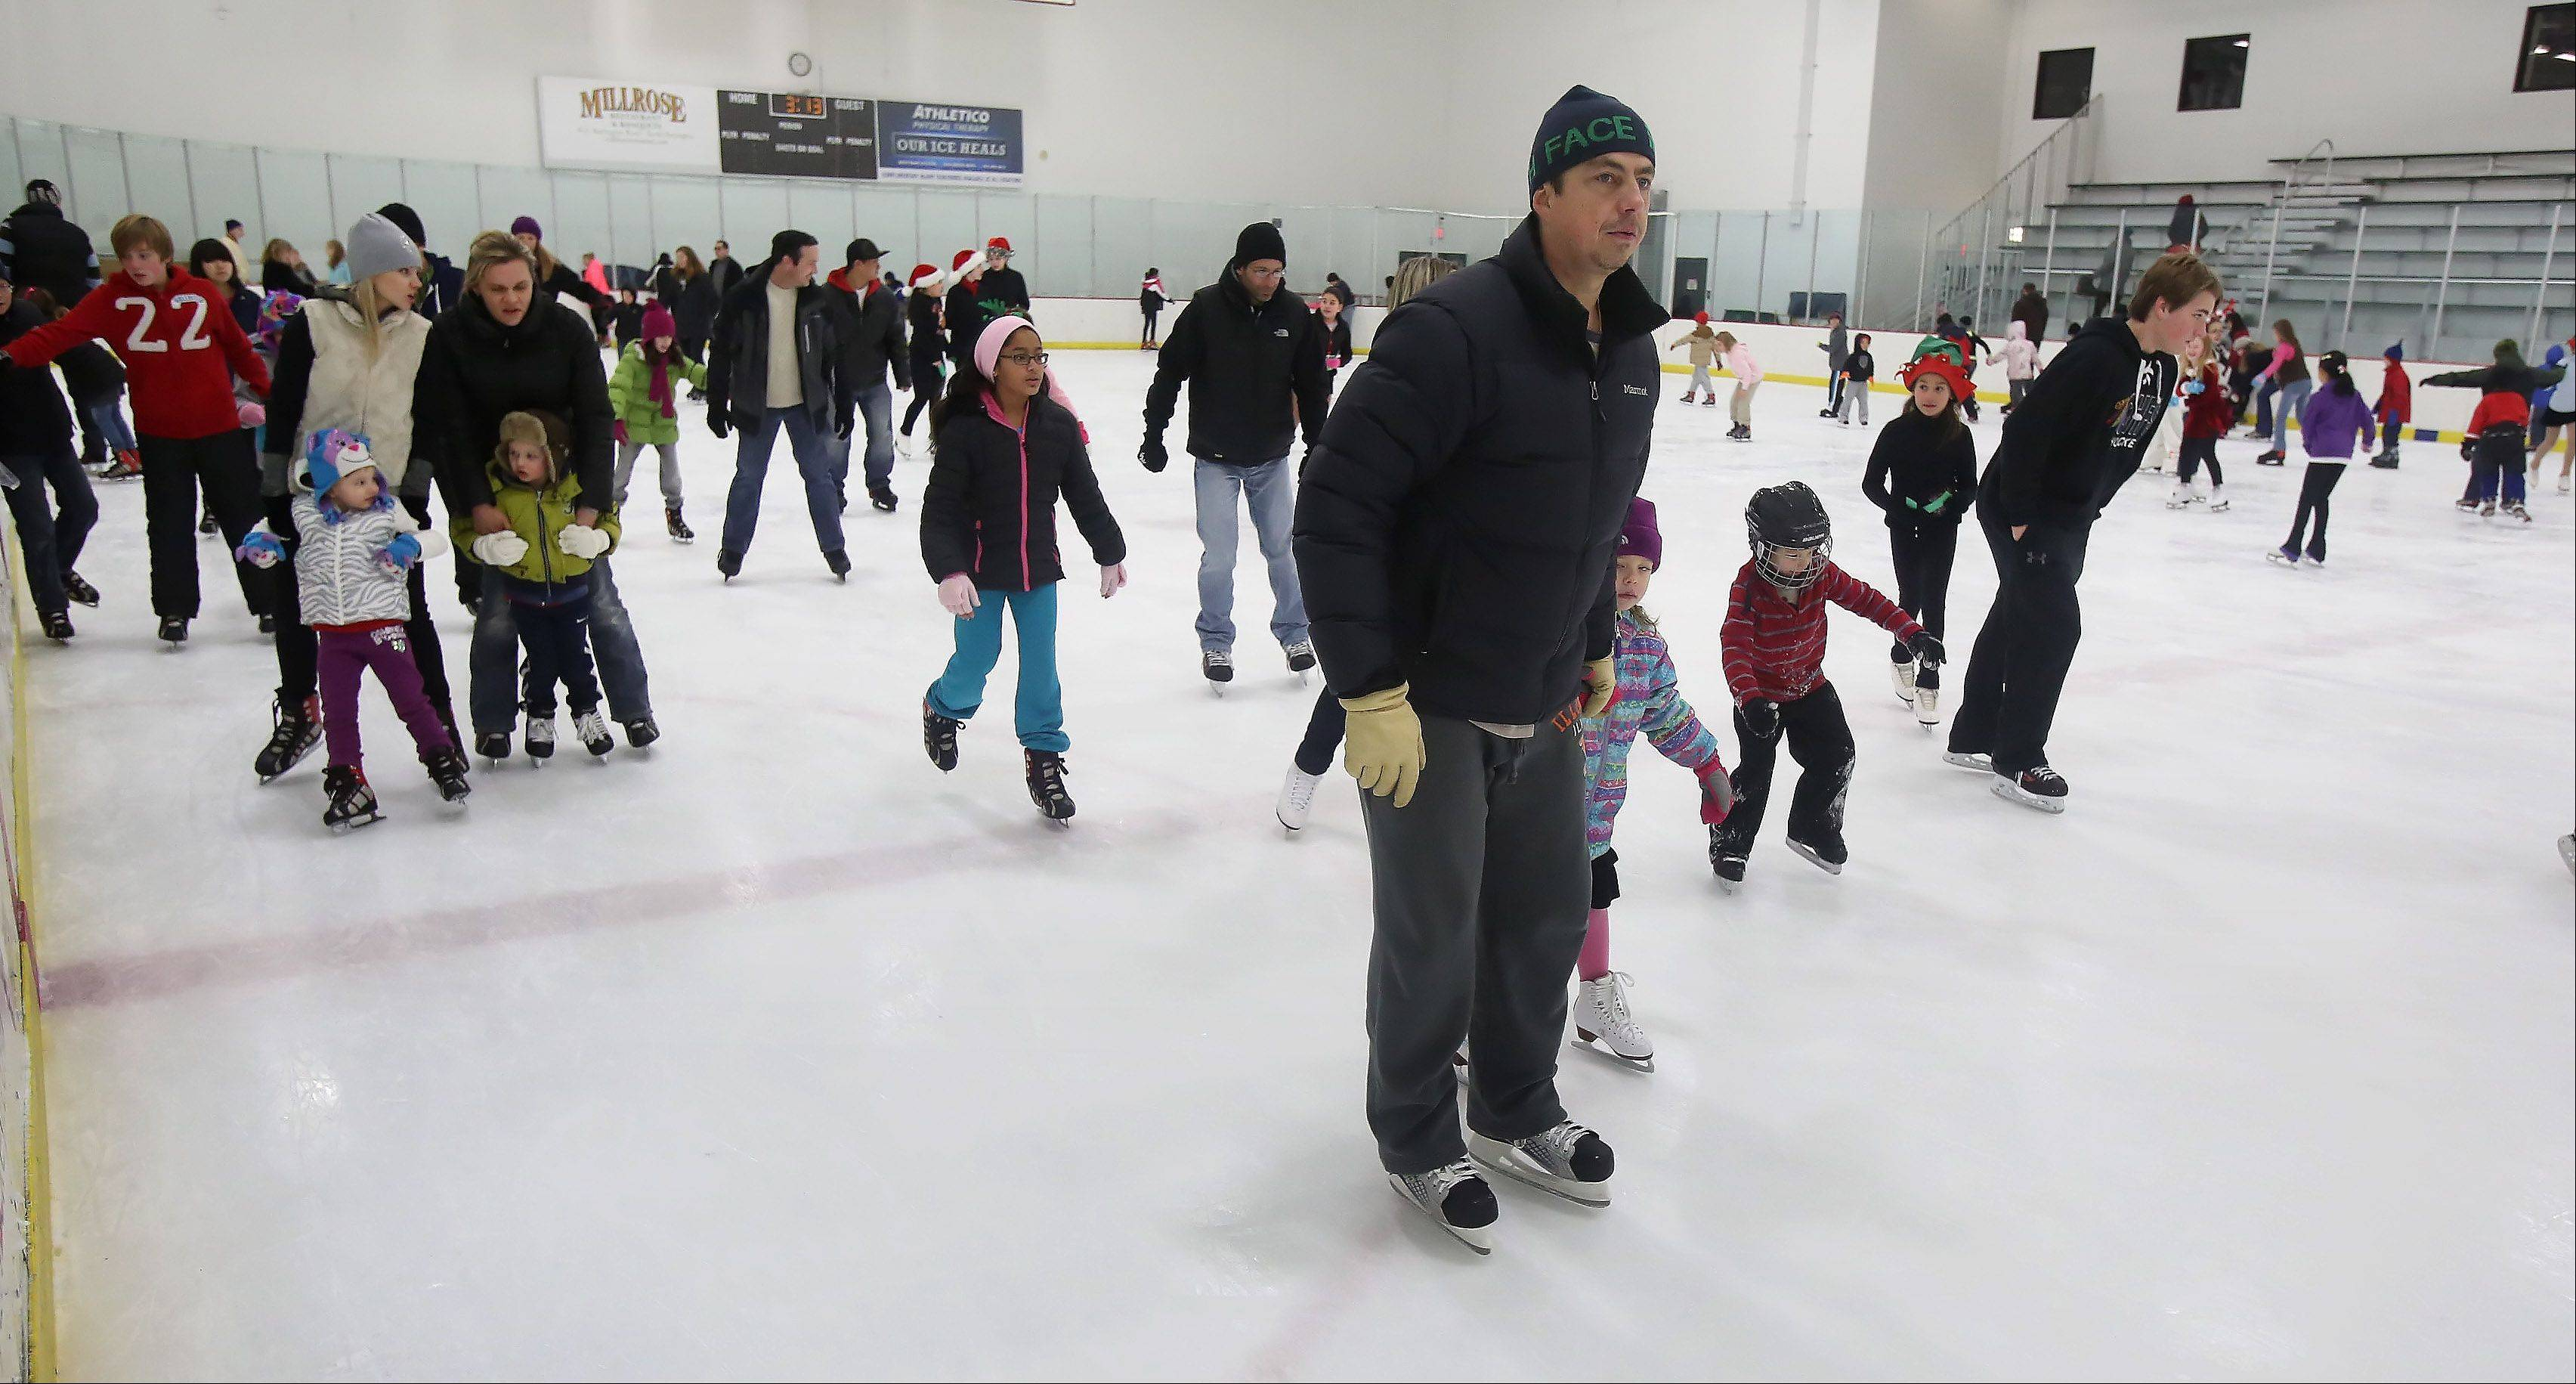 Over 200 people took to the ice Sunday during Skate with Santa at Triphahn Ice Arena in Hoffman Estates. Families enjoyed open skating with Mr. and Mrs. Claus as well as Frosty, the Snowman.